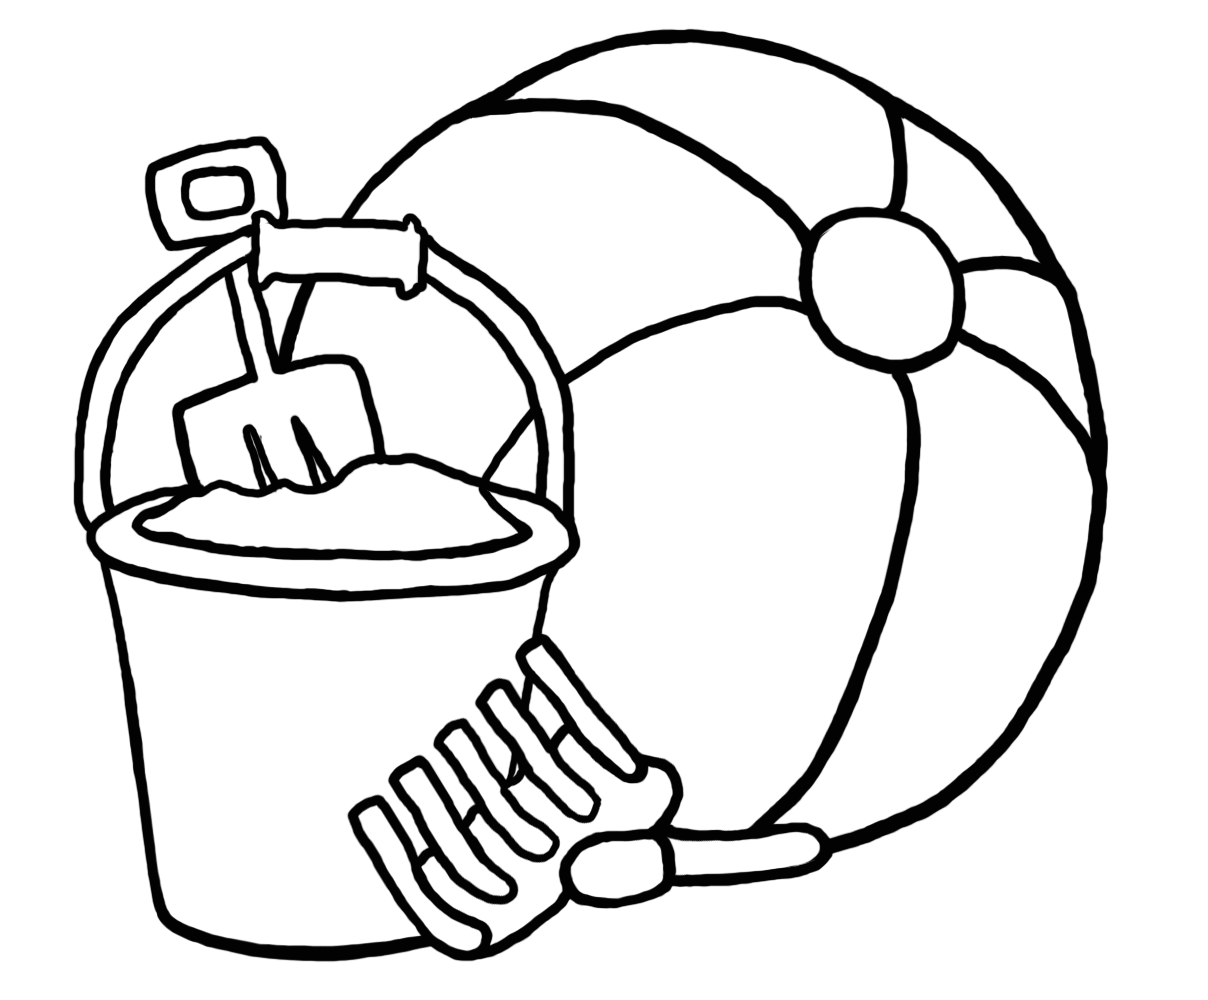 graphic black and white library Beach Ball Drawing at GetDrawings